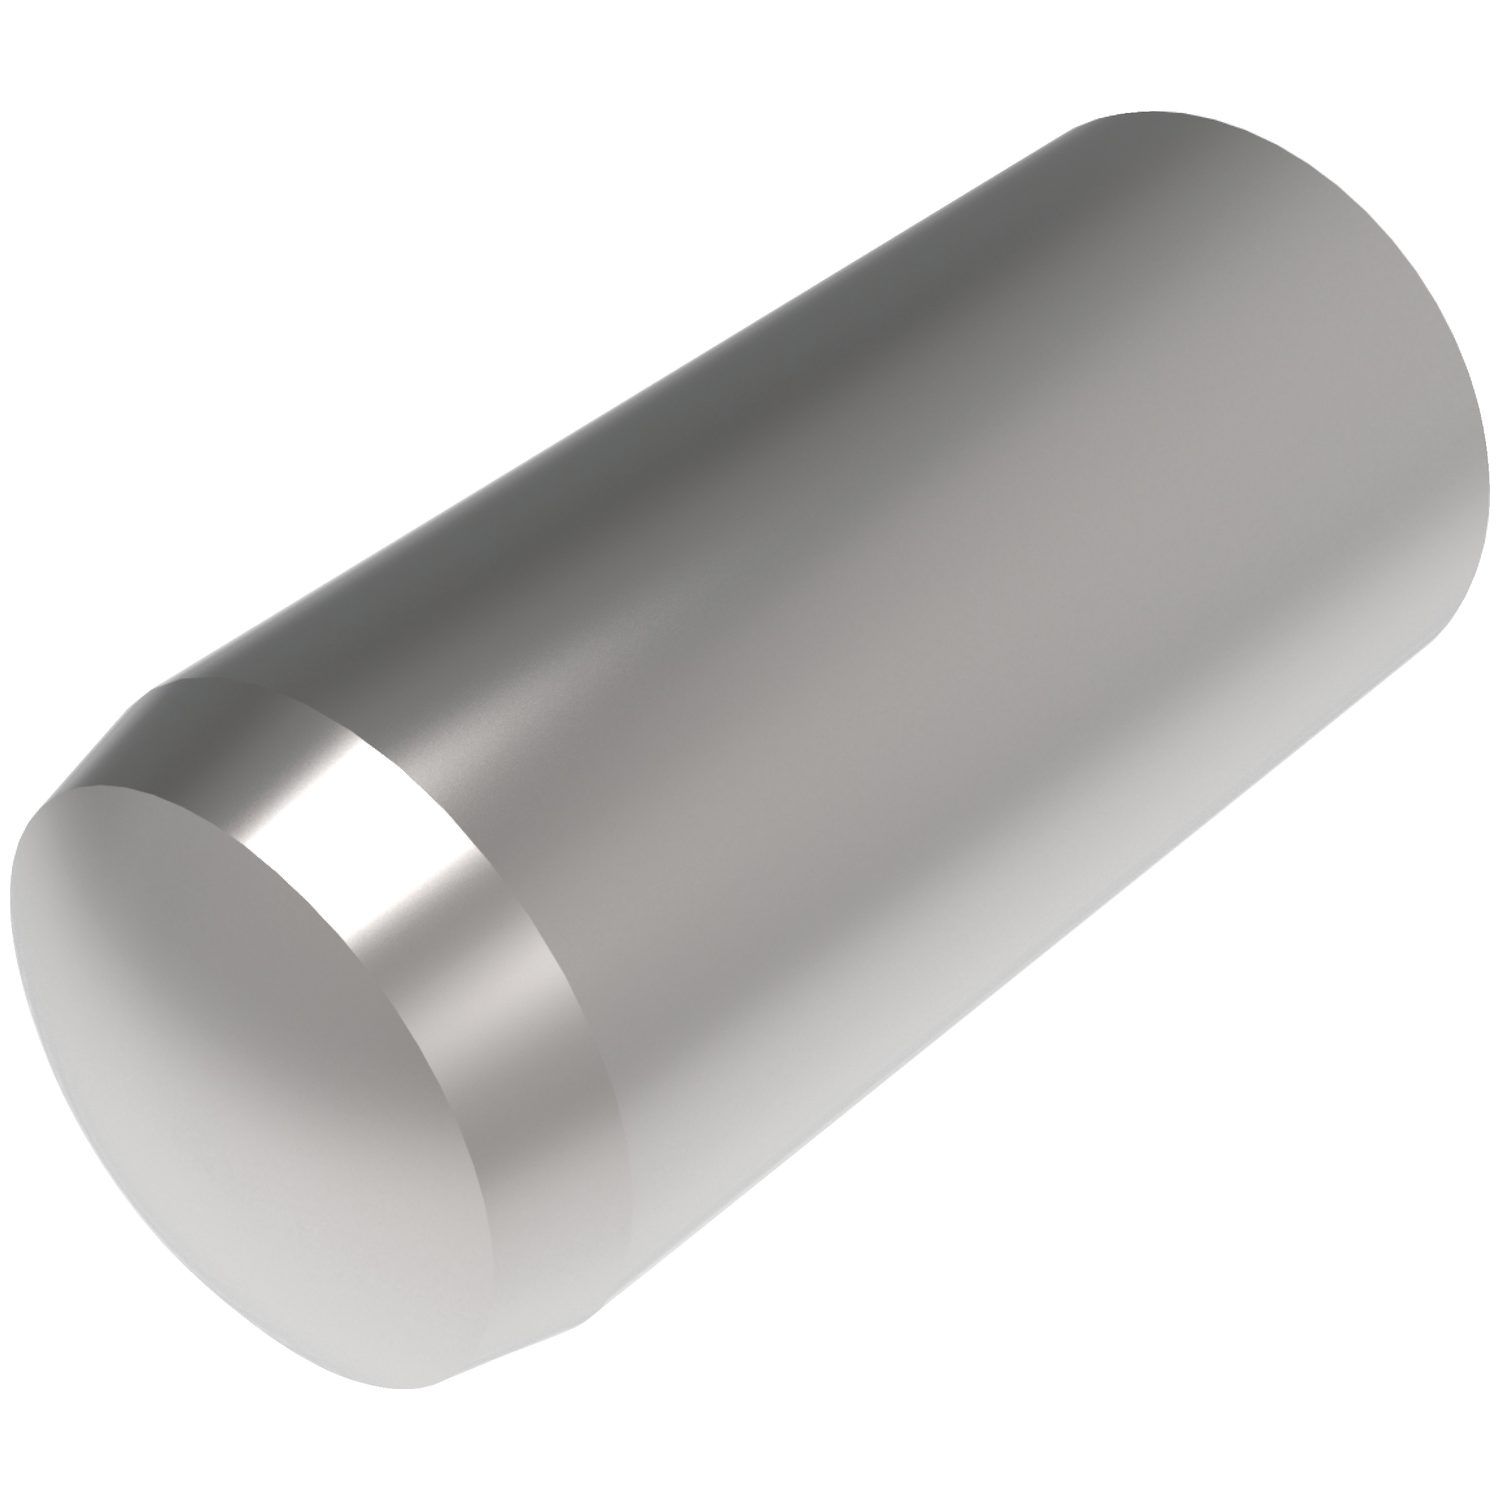 Steel Dowel Pins Steel dowel pins manufactured to DIN 6325, ISO 8734. Through hardened and ground steel.